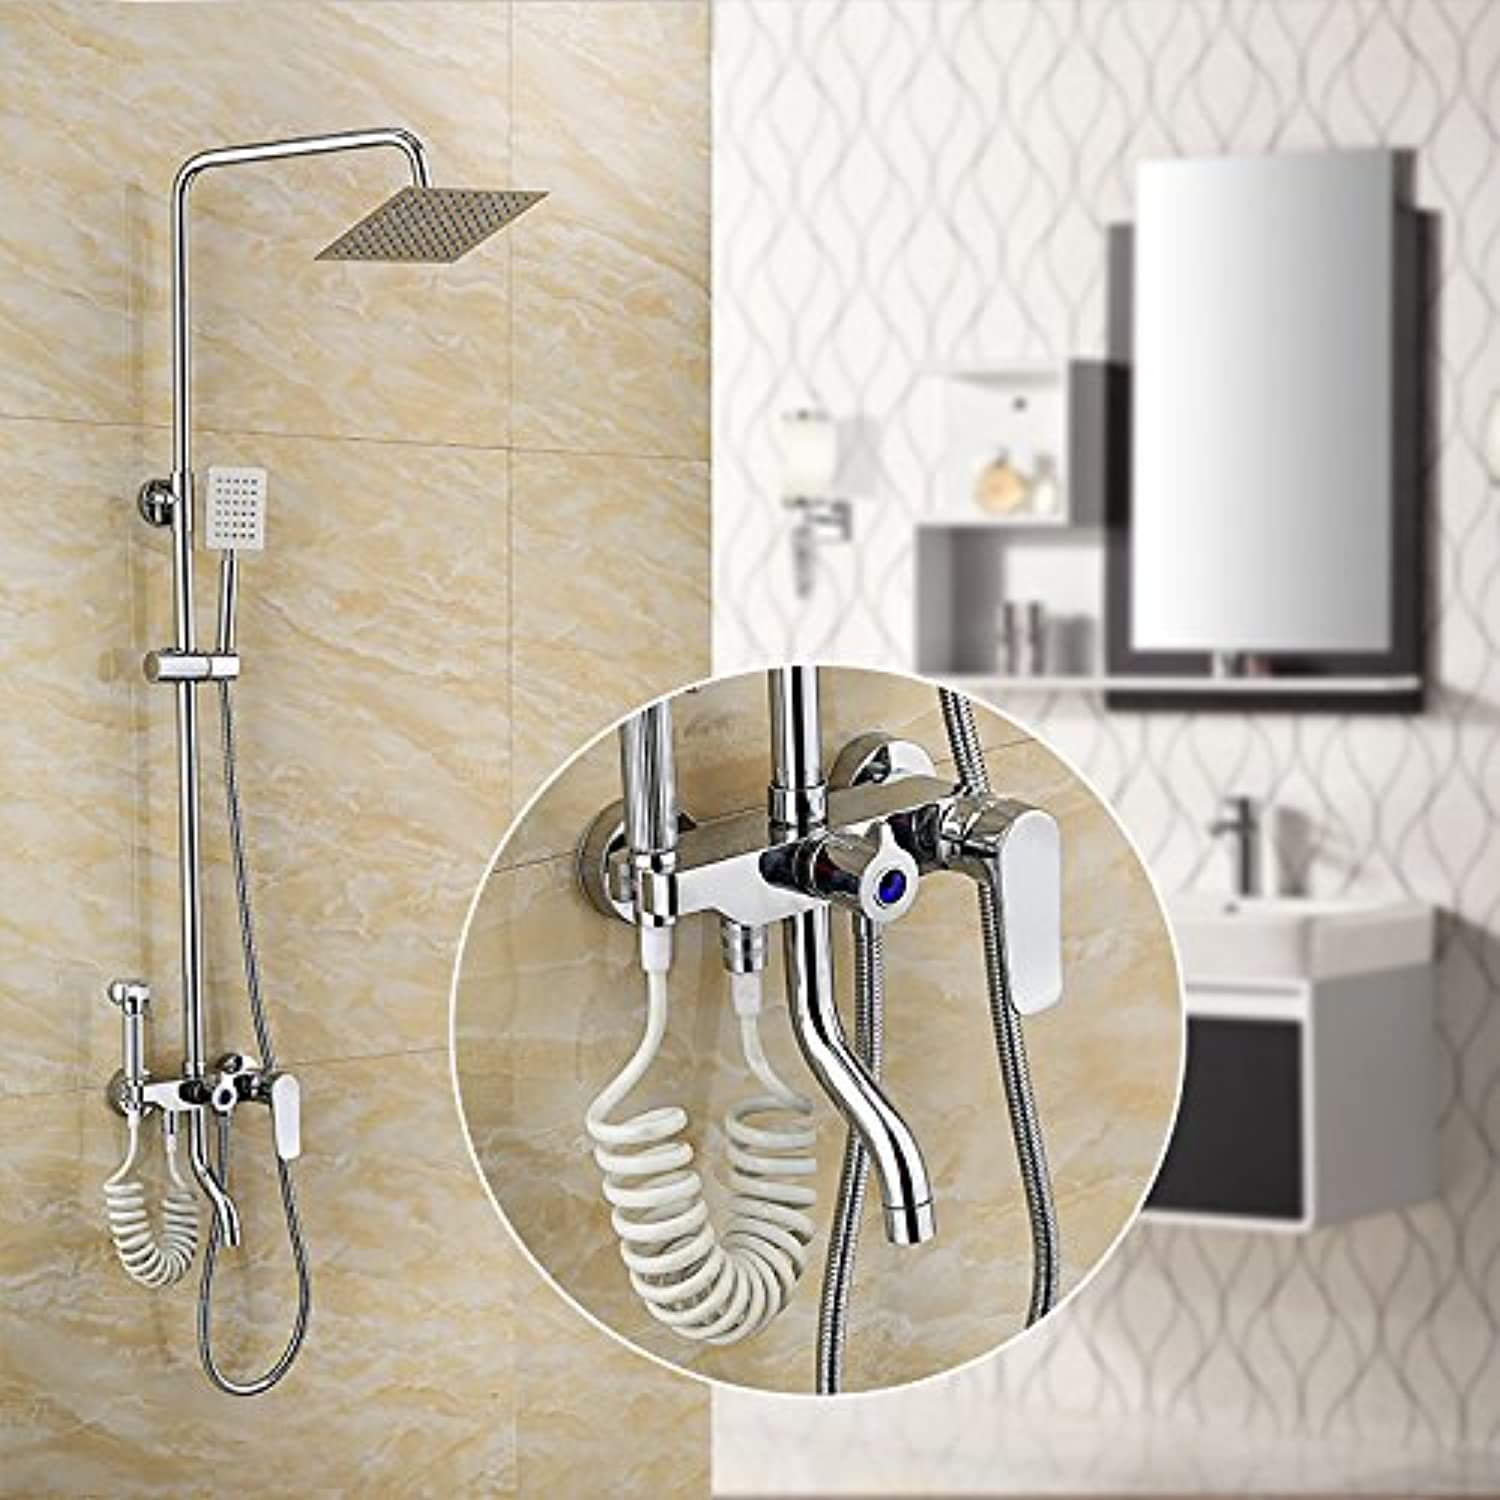 Hlluya Professional Sink Mixer Tap Kitchen Faucet The copper plate rolling four-door shower bath suite with a woman Washing with hot and cold water mix lift Shower Faucet